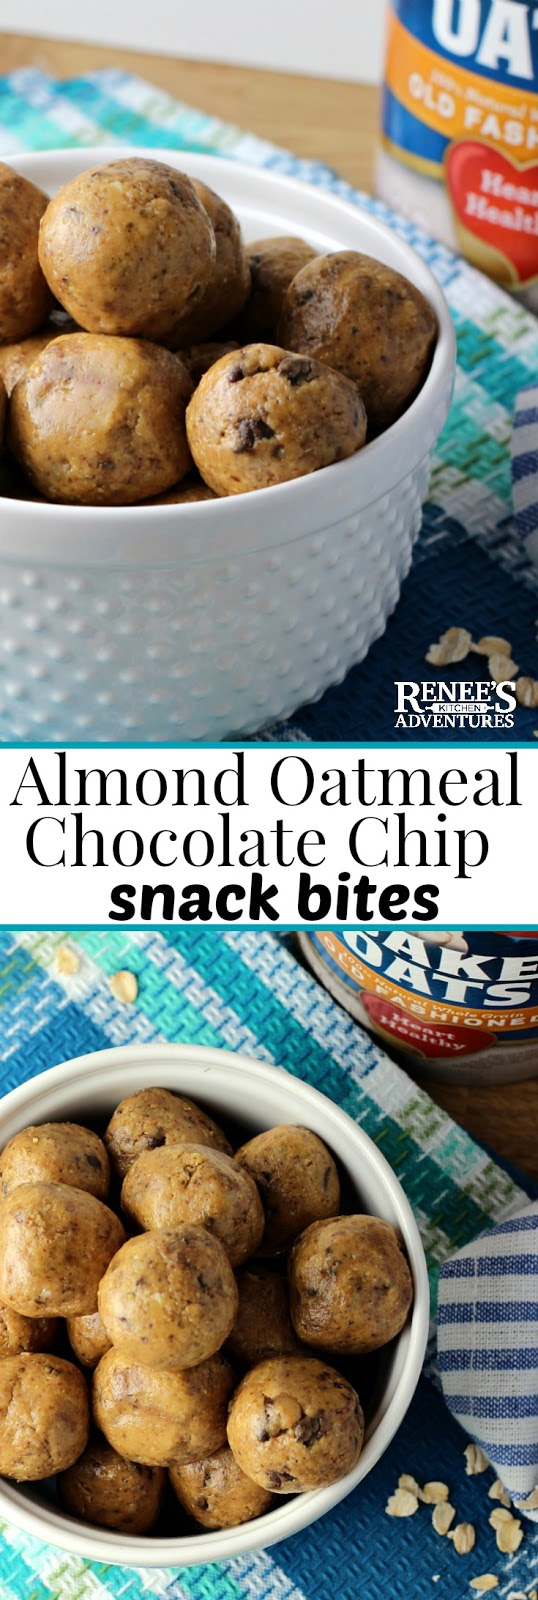 Almond Oatmeal Chocolate Chip Bites | by Renee's Kitchen Adventures - Easy recipe for snack bites made from the good stuff...almonds, oats, honey, and just a touch of dark chocolate for a snack bite or energy bite the whole family will love! Easy to make and take along with you on the go! They make a perfect snack, dessert, or breakfast. Enjoy these Almond Oatmeal Chocolate Chip Bites anytime of the day! #iHeartQuakerOats #ad #oatmealrecipes #energybites #snacks